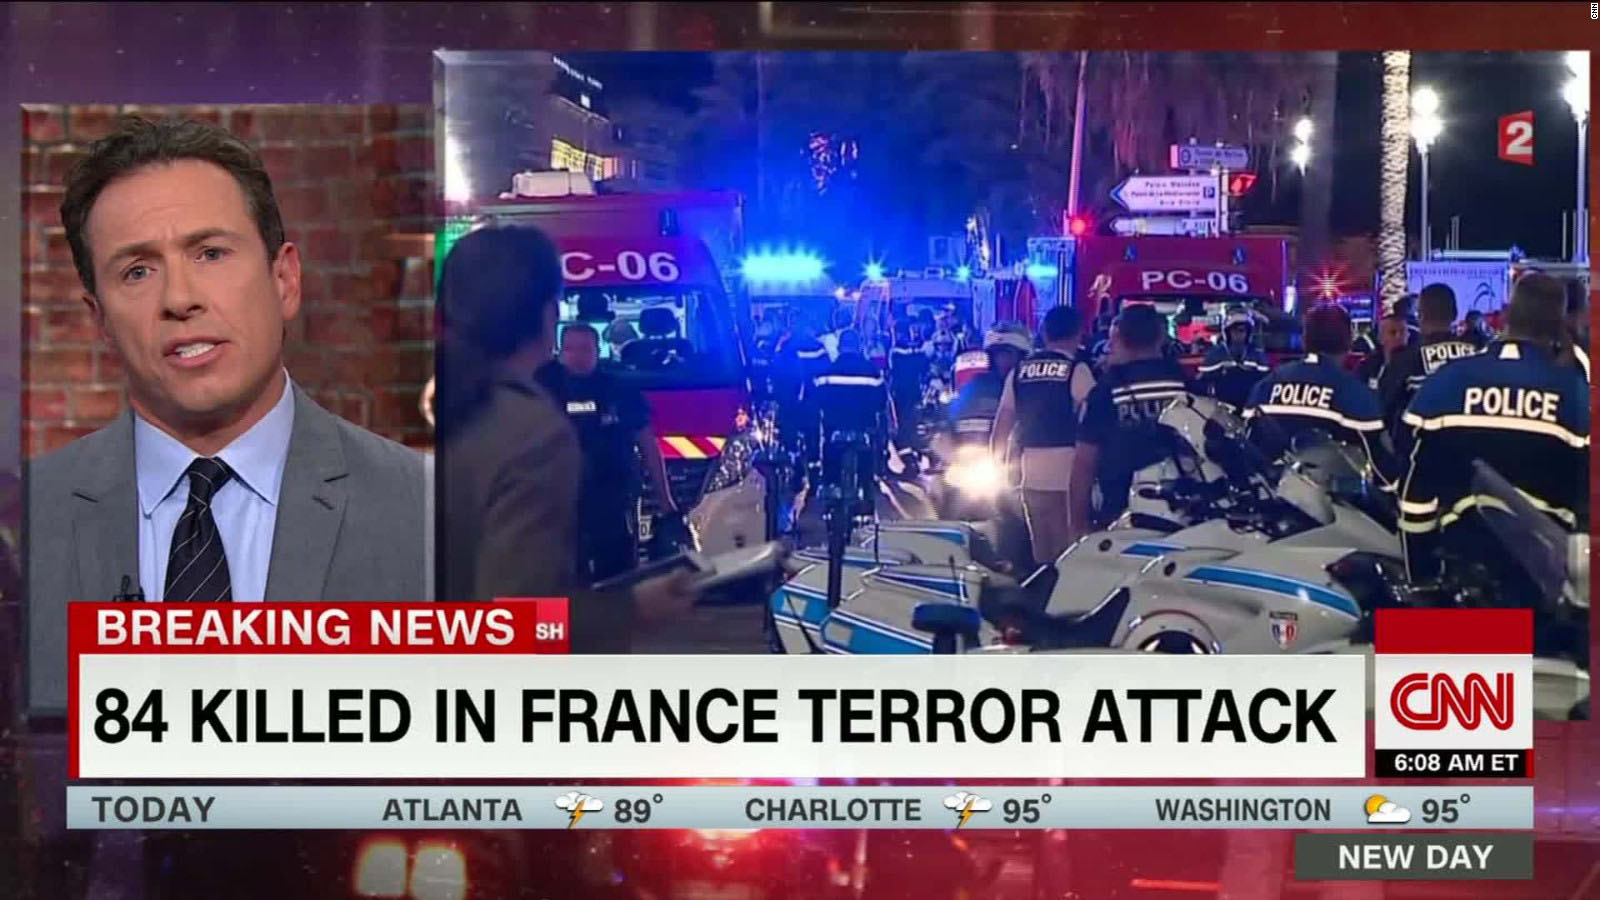 Following the Nice truck terror attack the French media watchdog, the CSA, issued an appeal for 'caution' and 'restraint' and the French police called on people to stop uploading images of victims as a sign of respect for them and their families. (CNN screen capture)